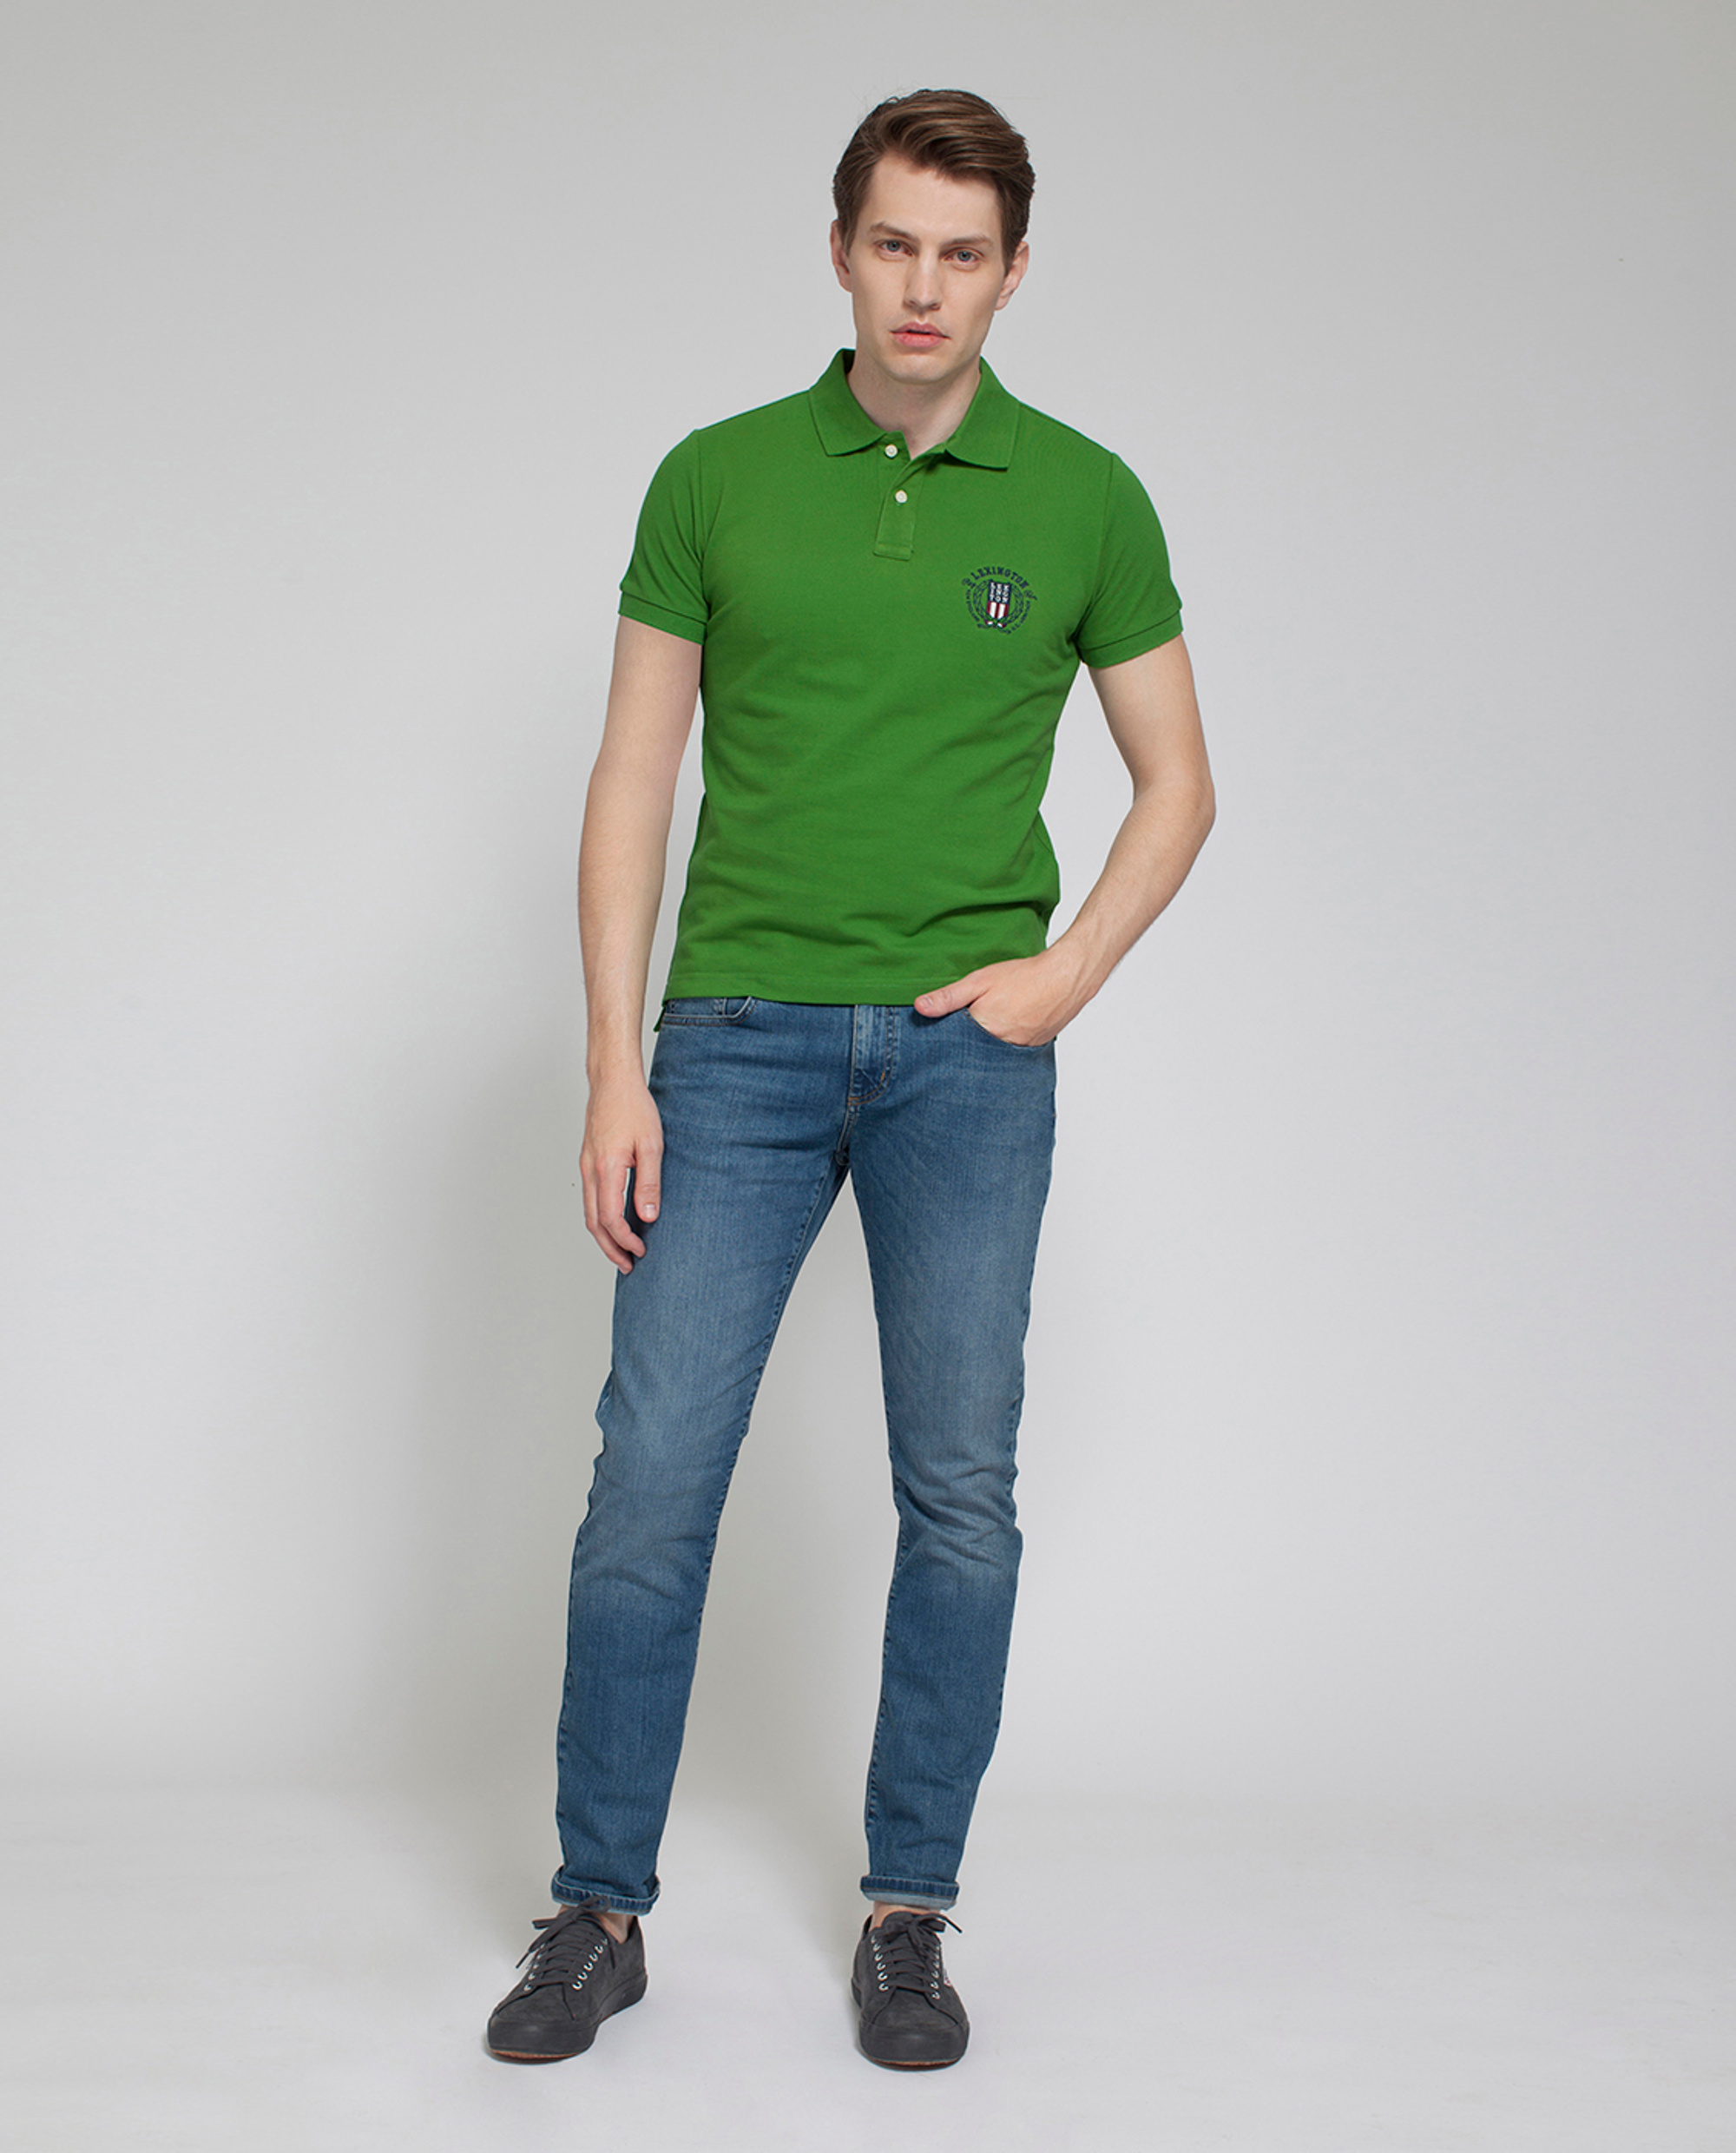 Oscar Polo, Tree Top Green